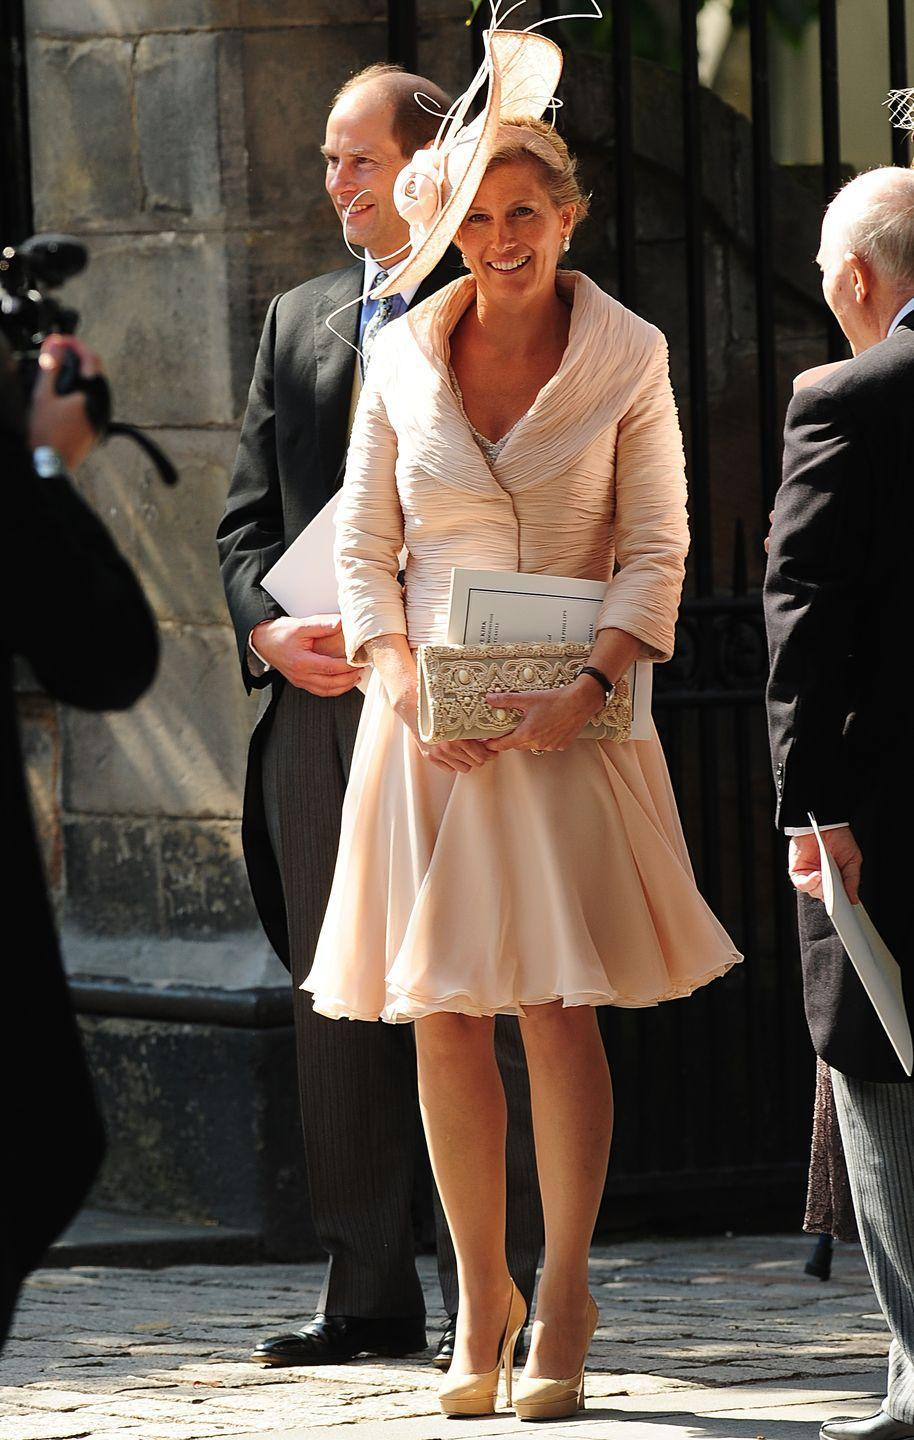 <p>Sophie, Countess of Wessex in all blush at the wedding of Zara Phillips and Mike Tindall.</p>